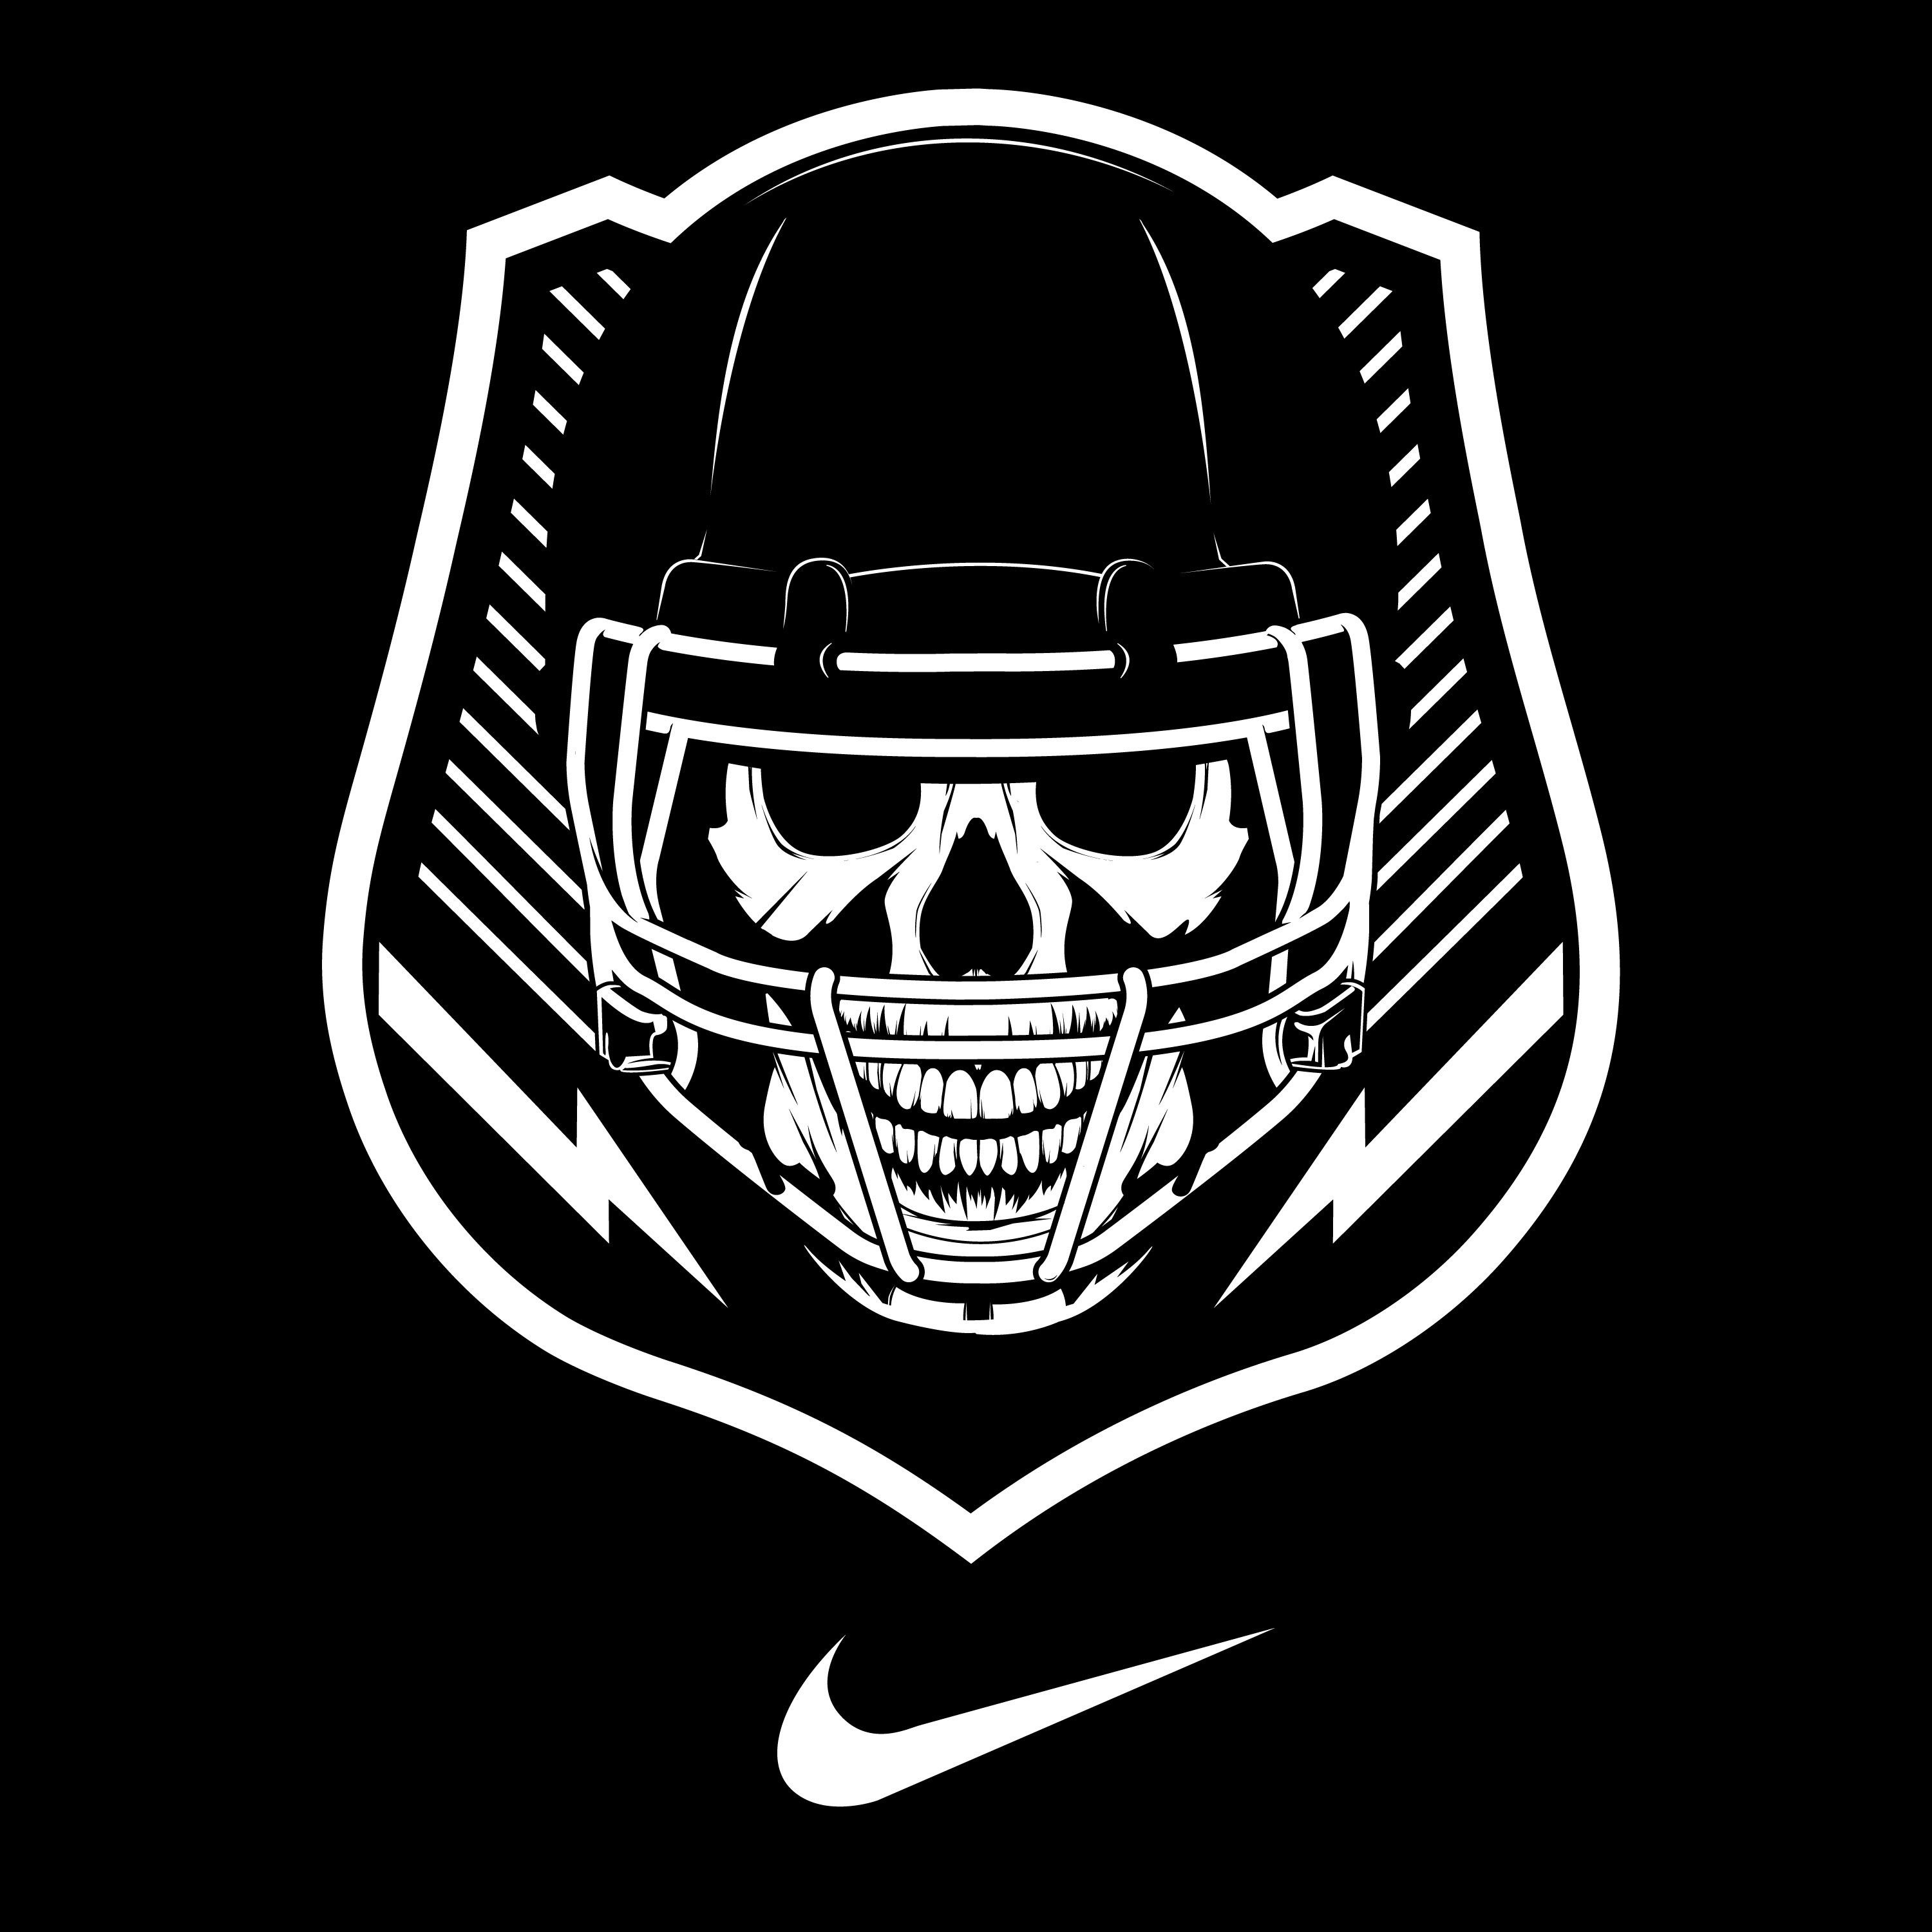 Cool Football Logos Pictures to Pin on Pinterest - PinsDaddy